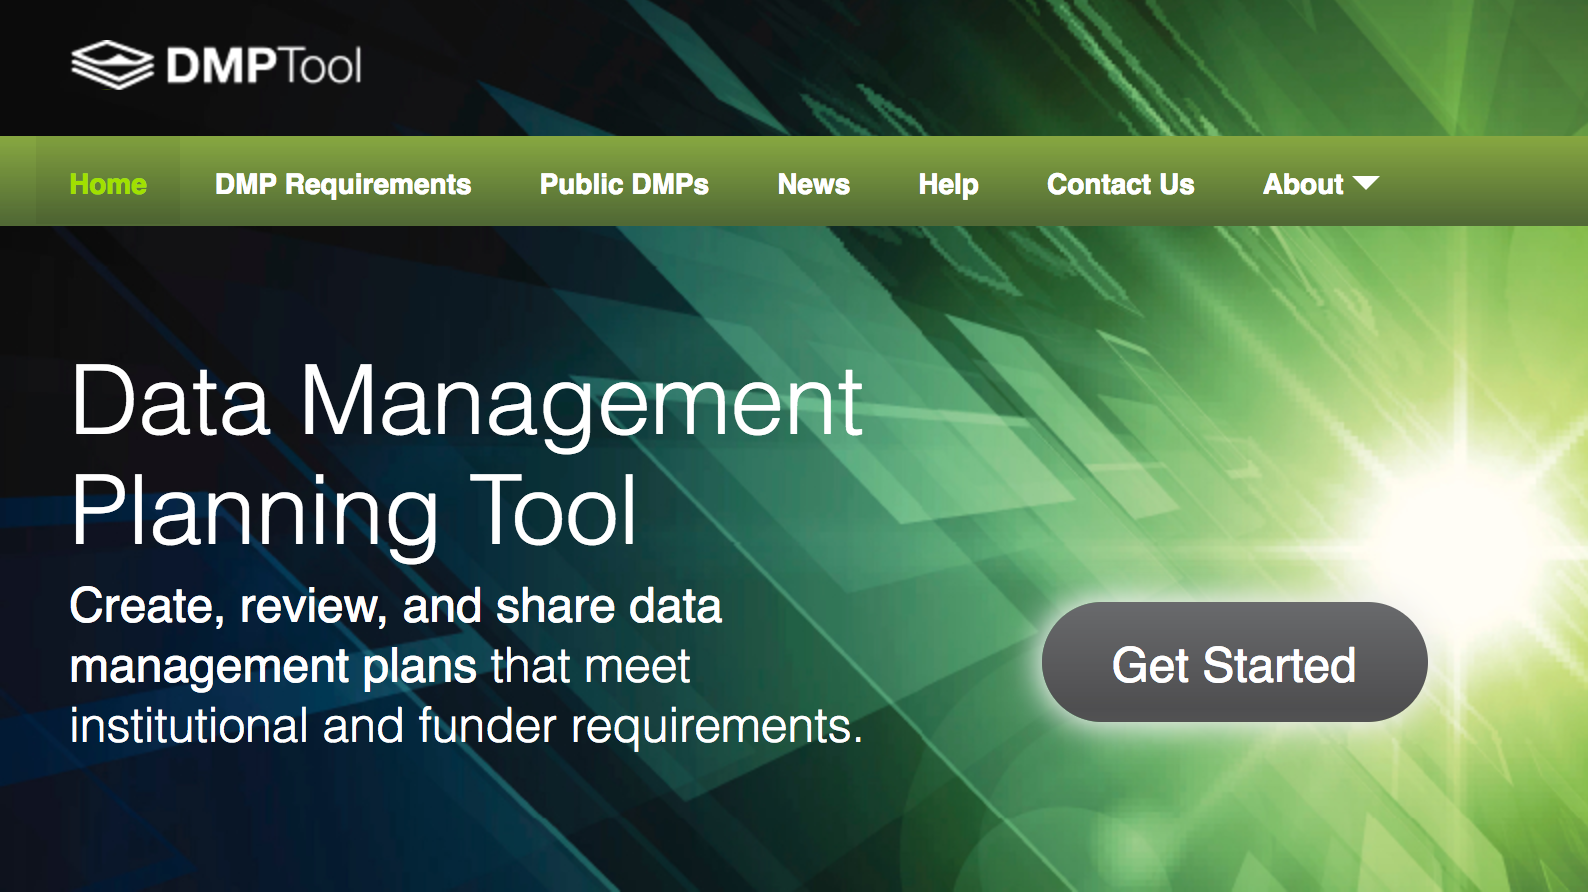 Image 1: Data Management Planning Tool (dmptool.org) homepage